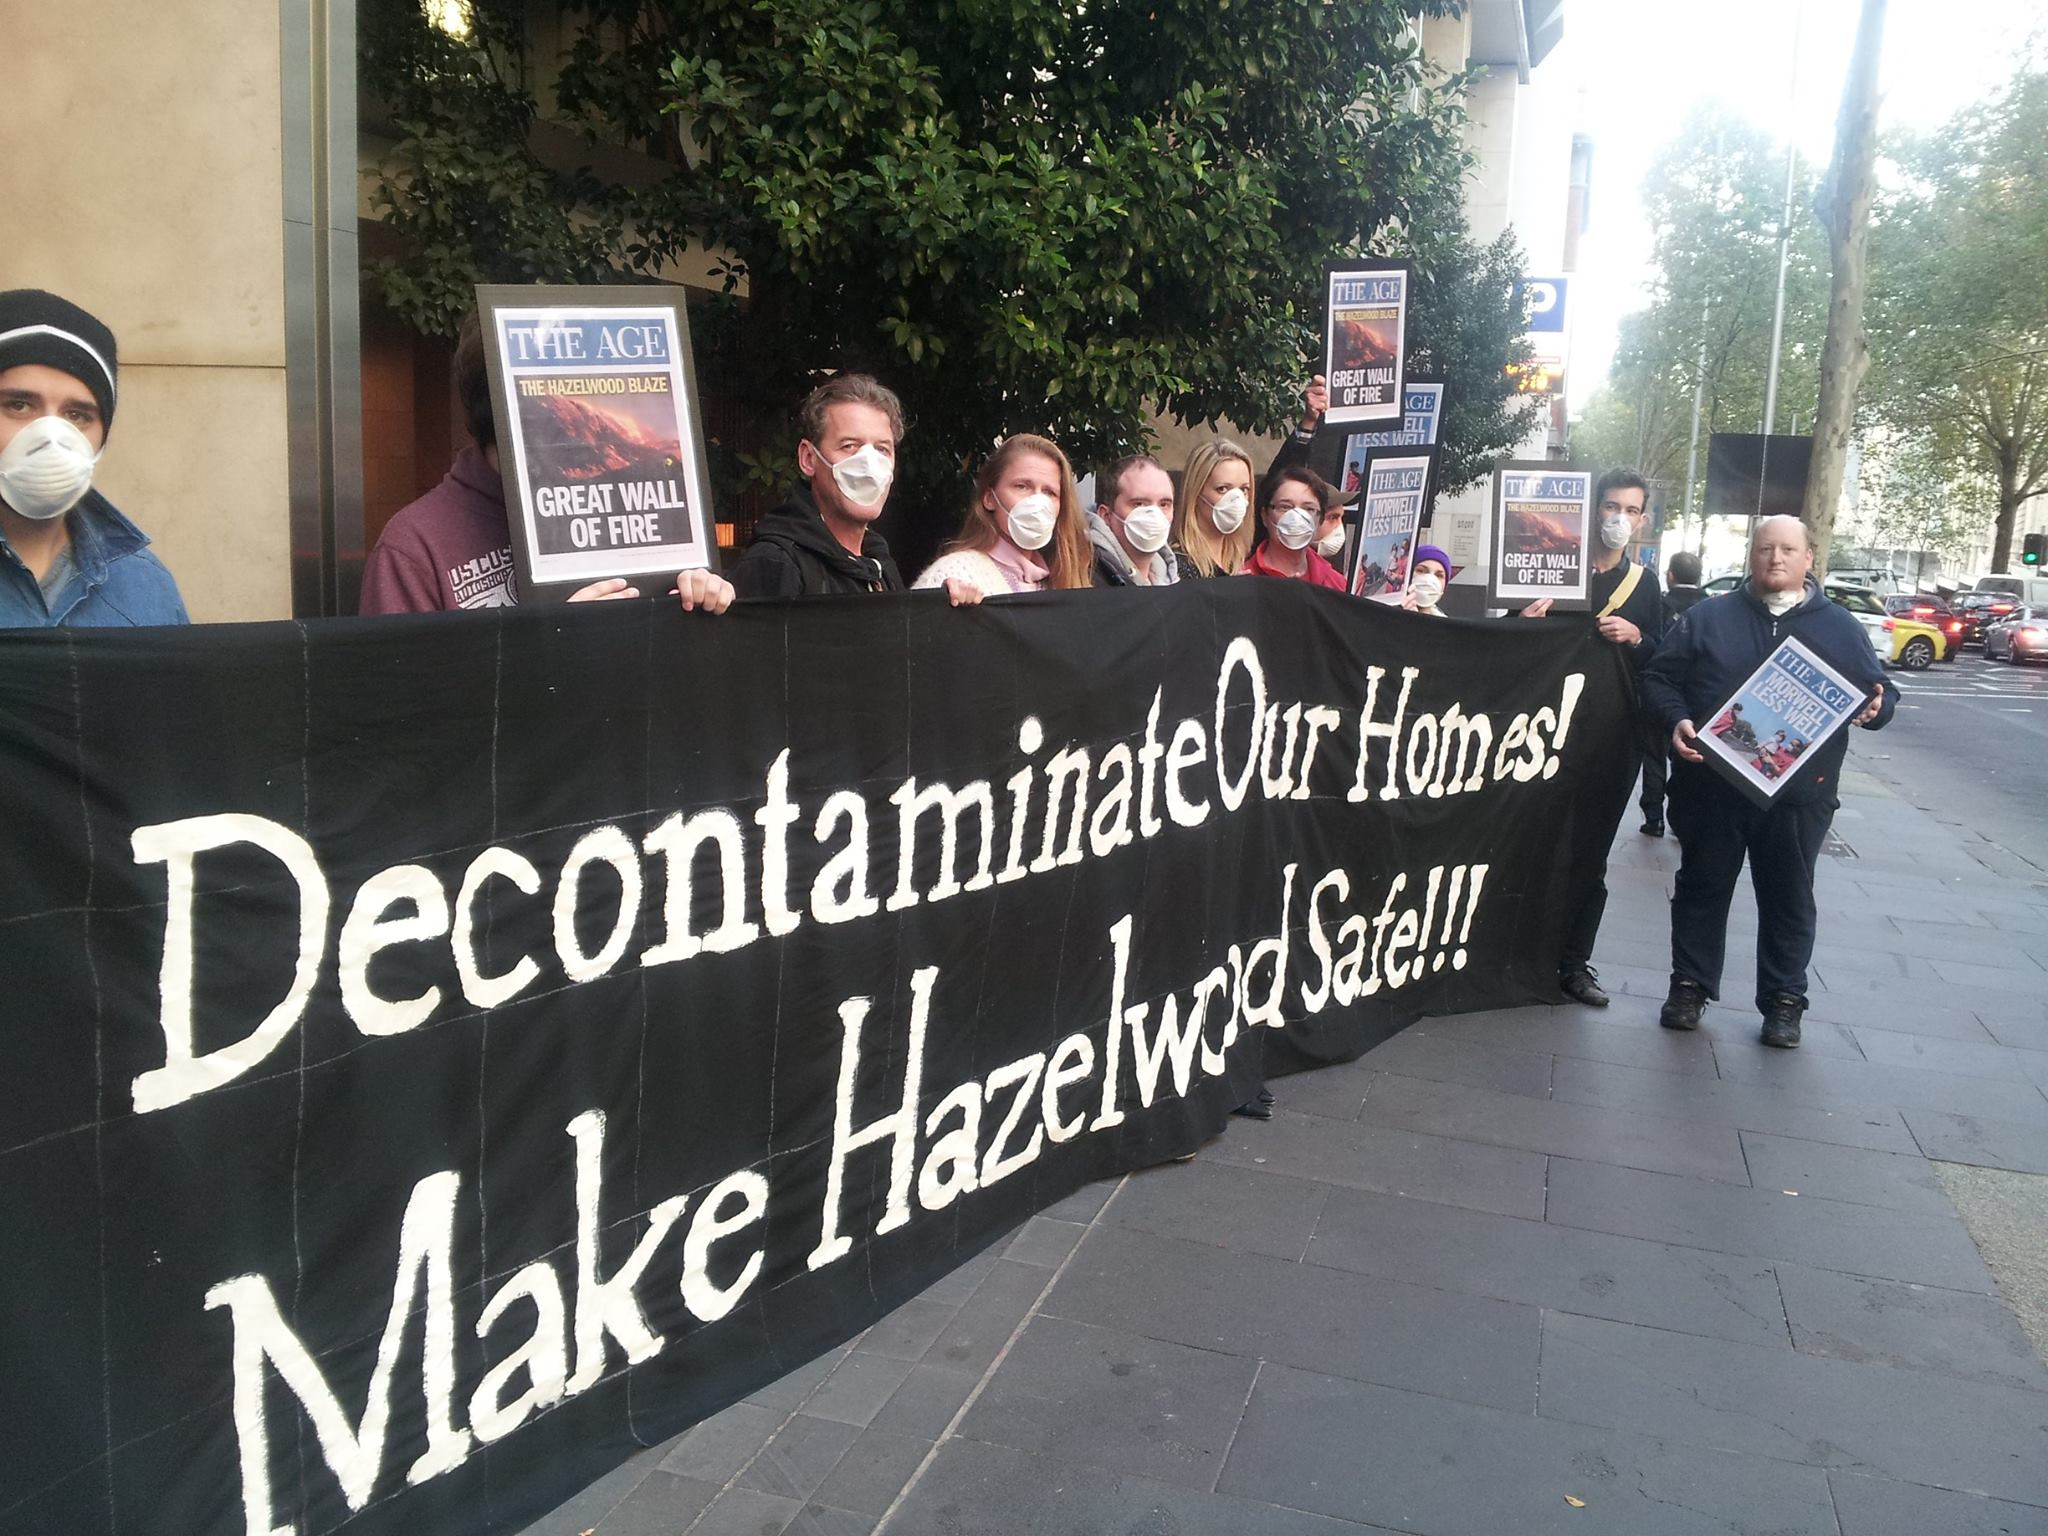 Melbourne -Decontaminate before more coal